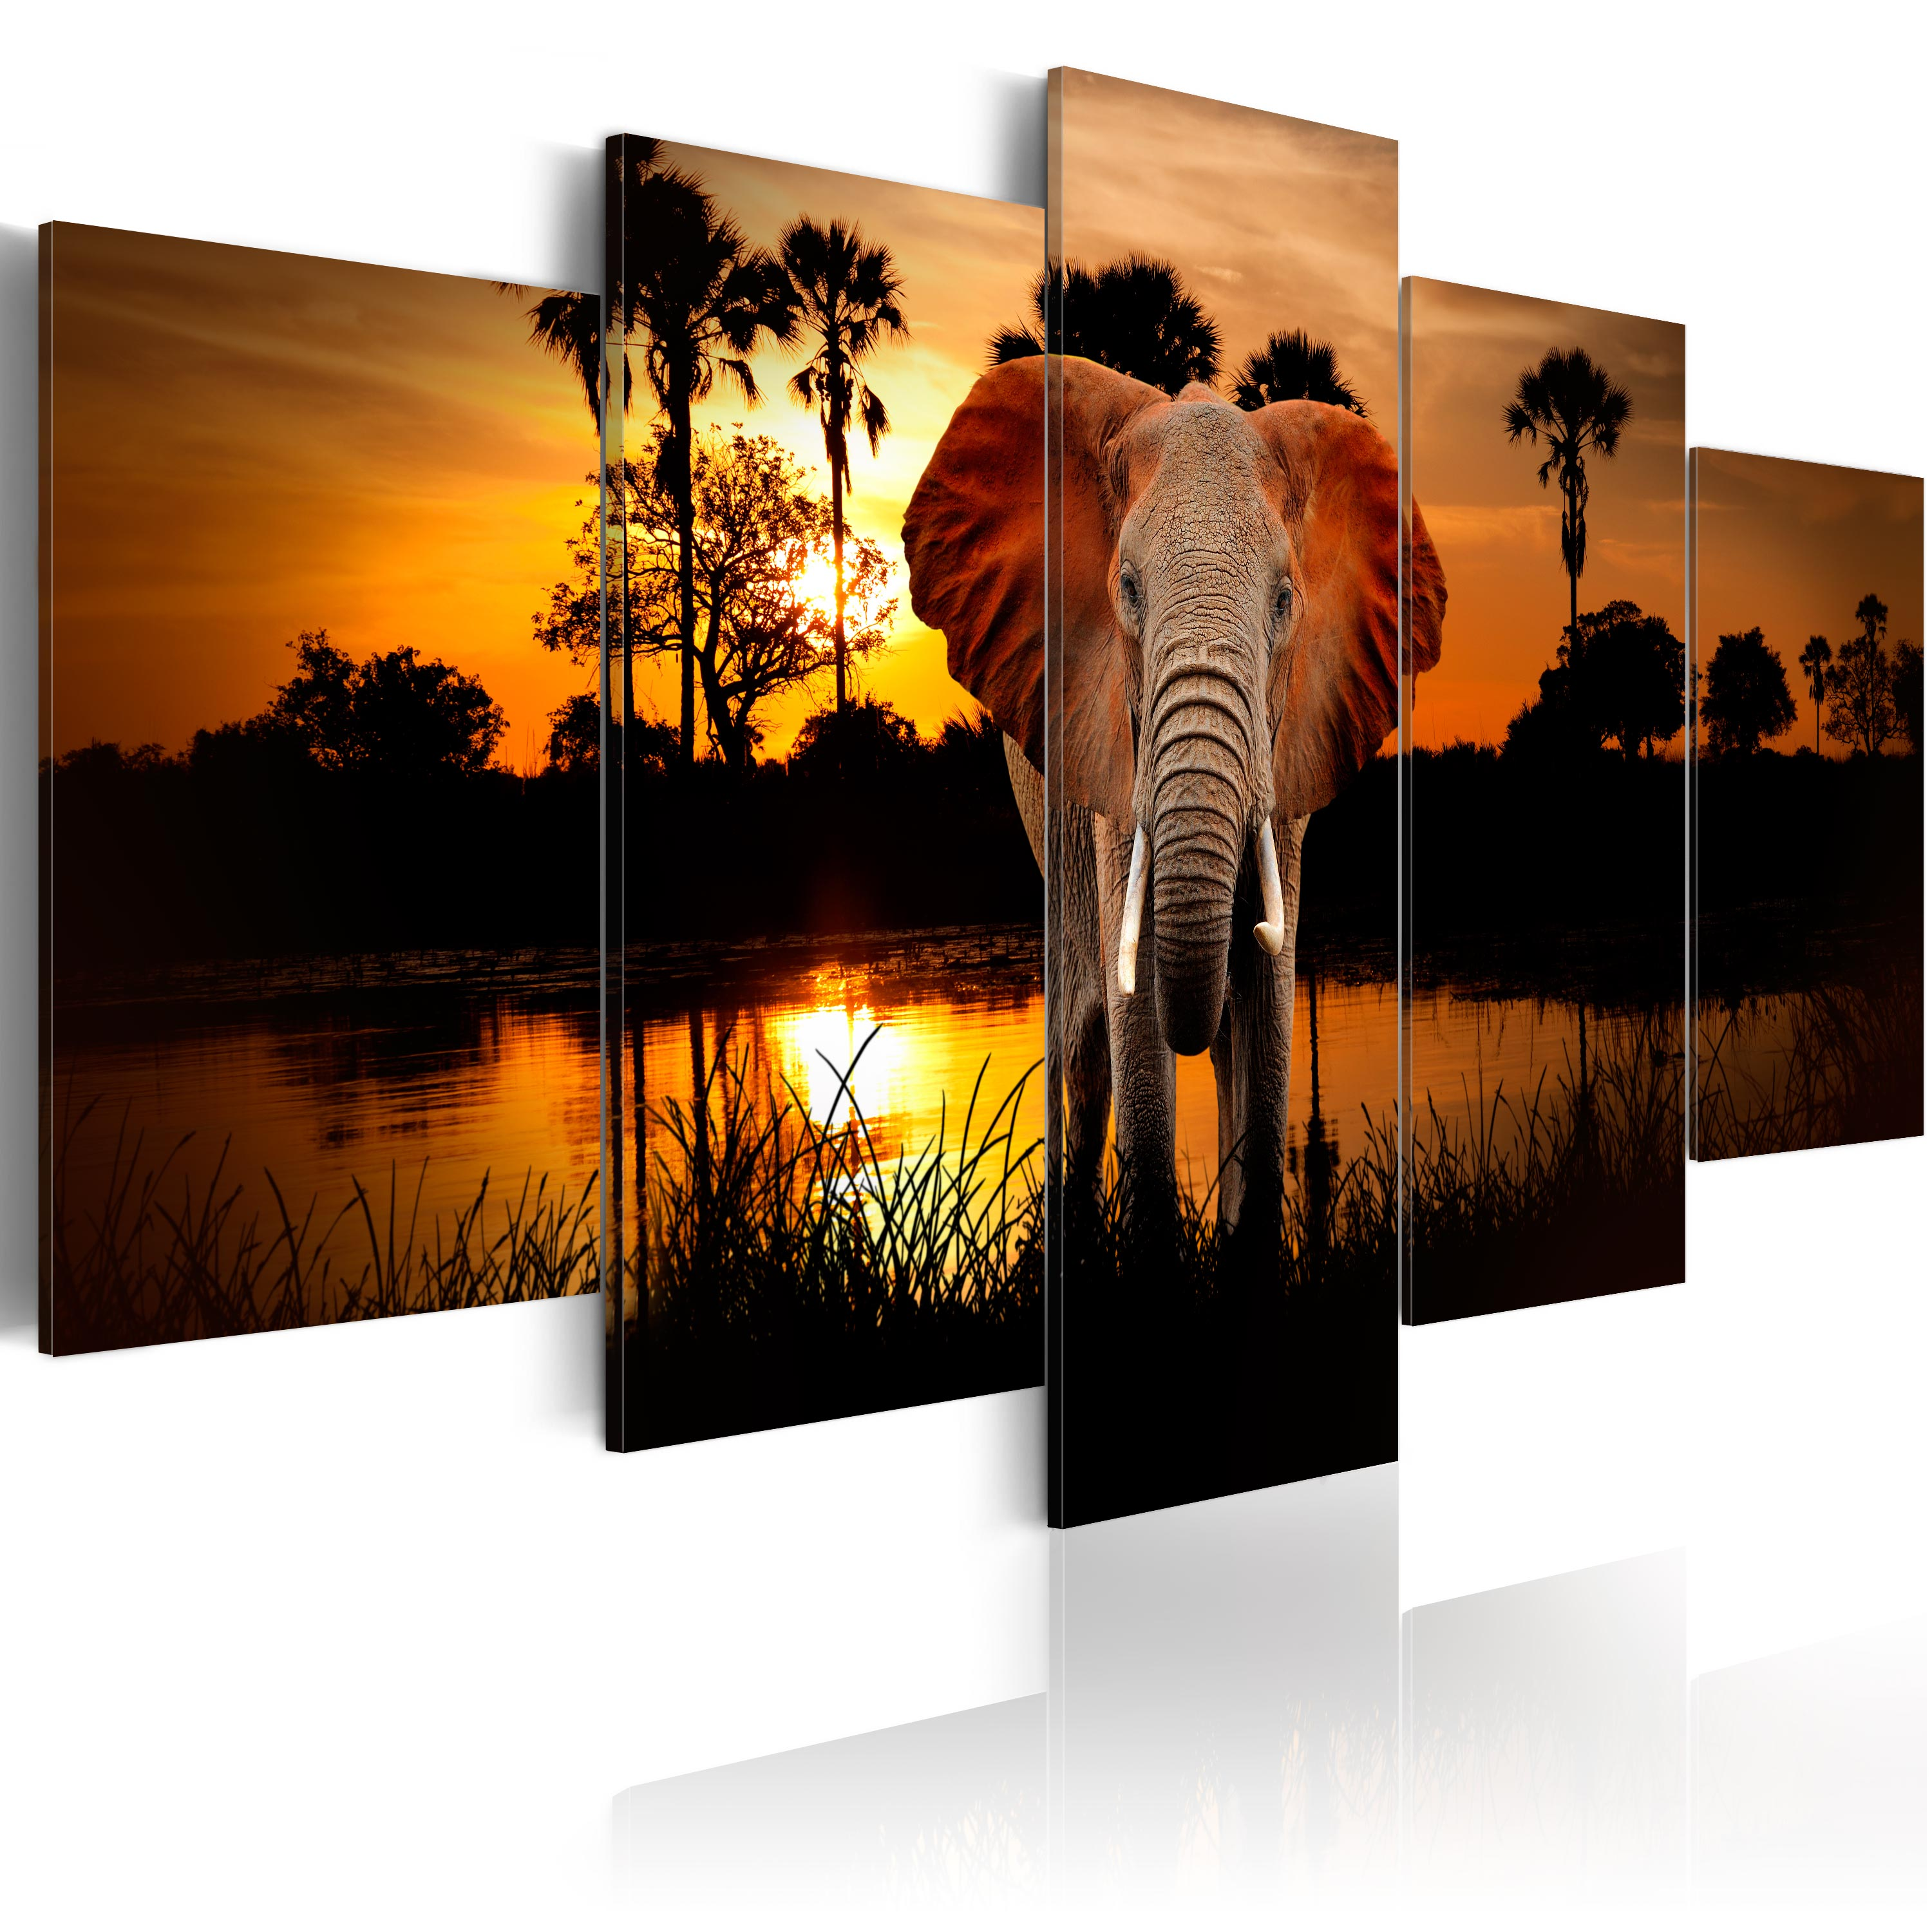 leinwand bilder xxl kunstdruck bild elefant afrika tier. Black Bedroom Furniture Sets. Home Design Ideas